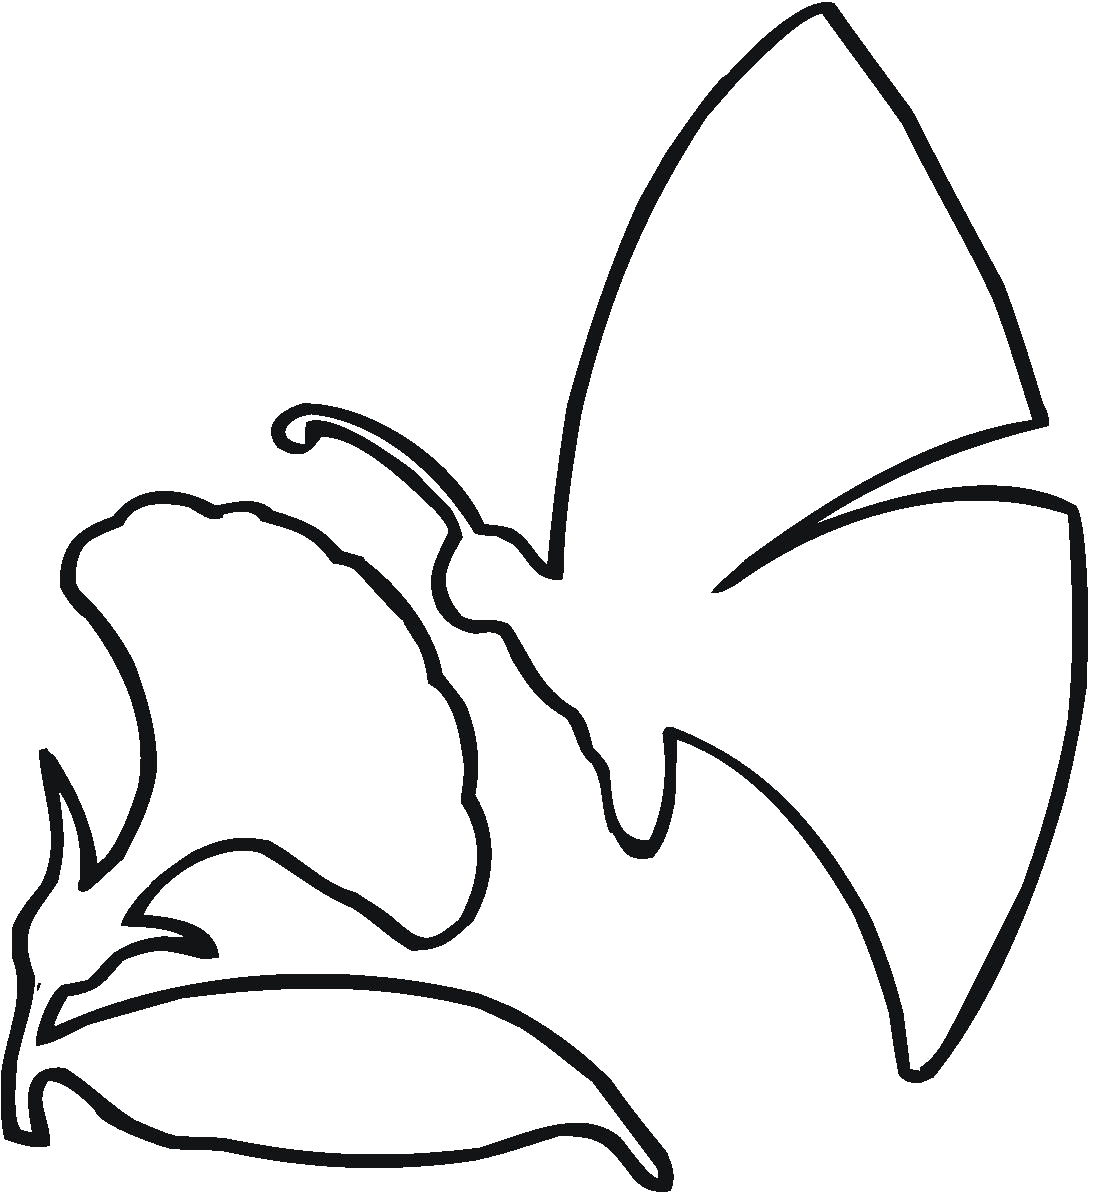 outline pictures of flowers for colouring flower outlines for coloring clipart best of for colouring pictures outline flowers